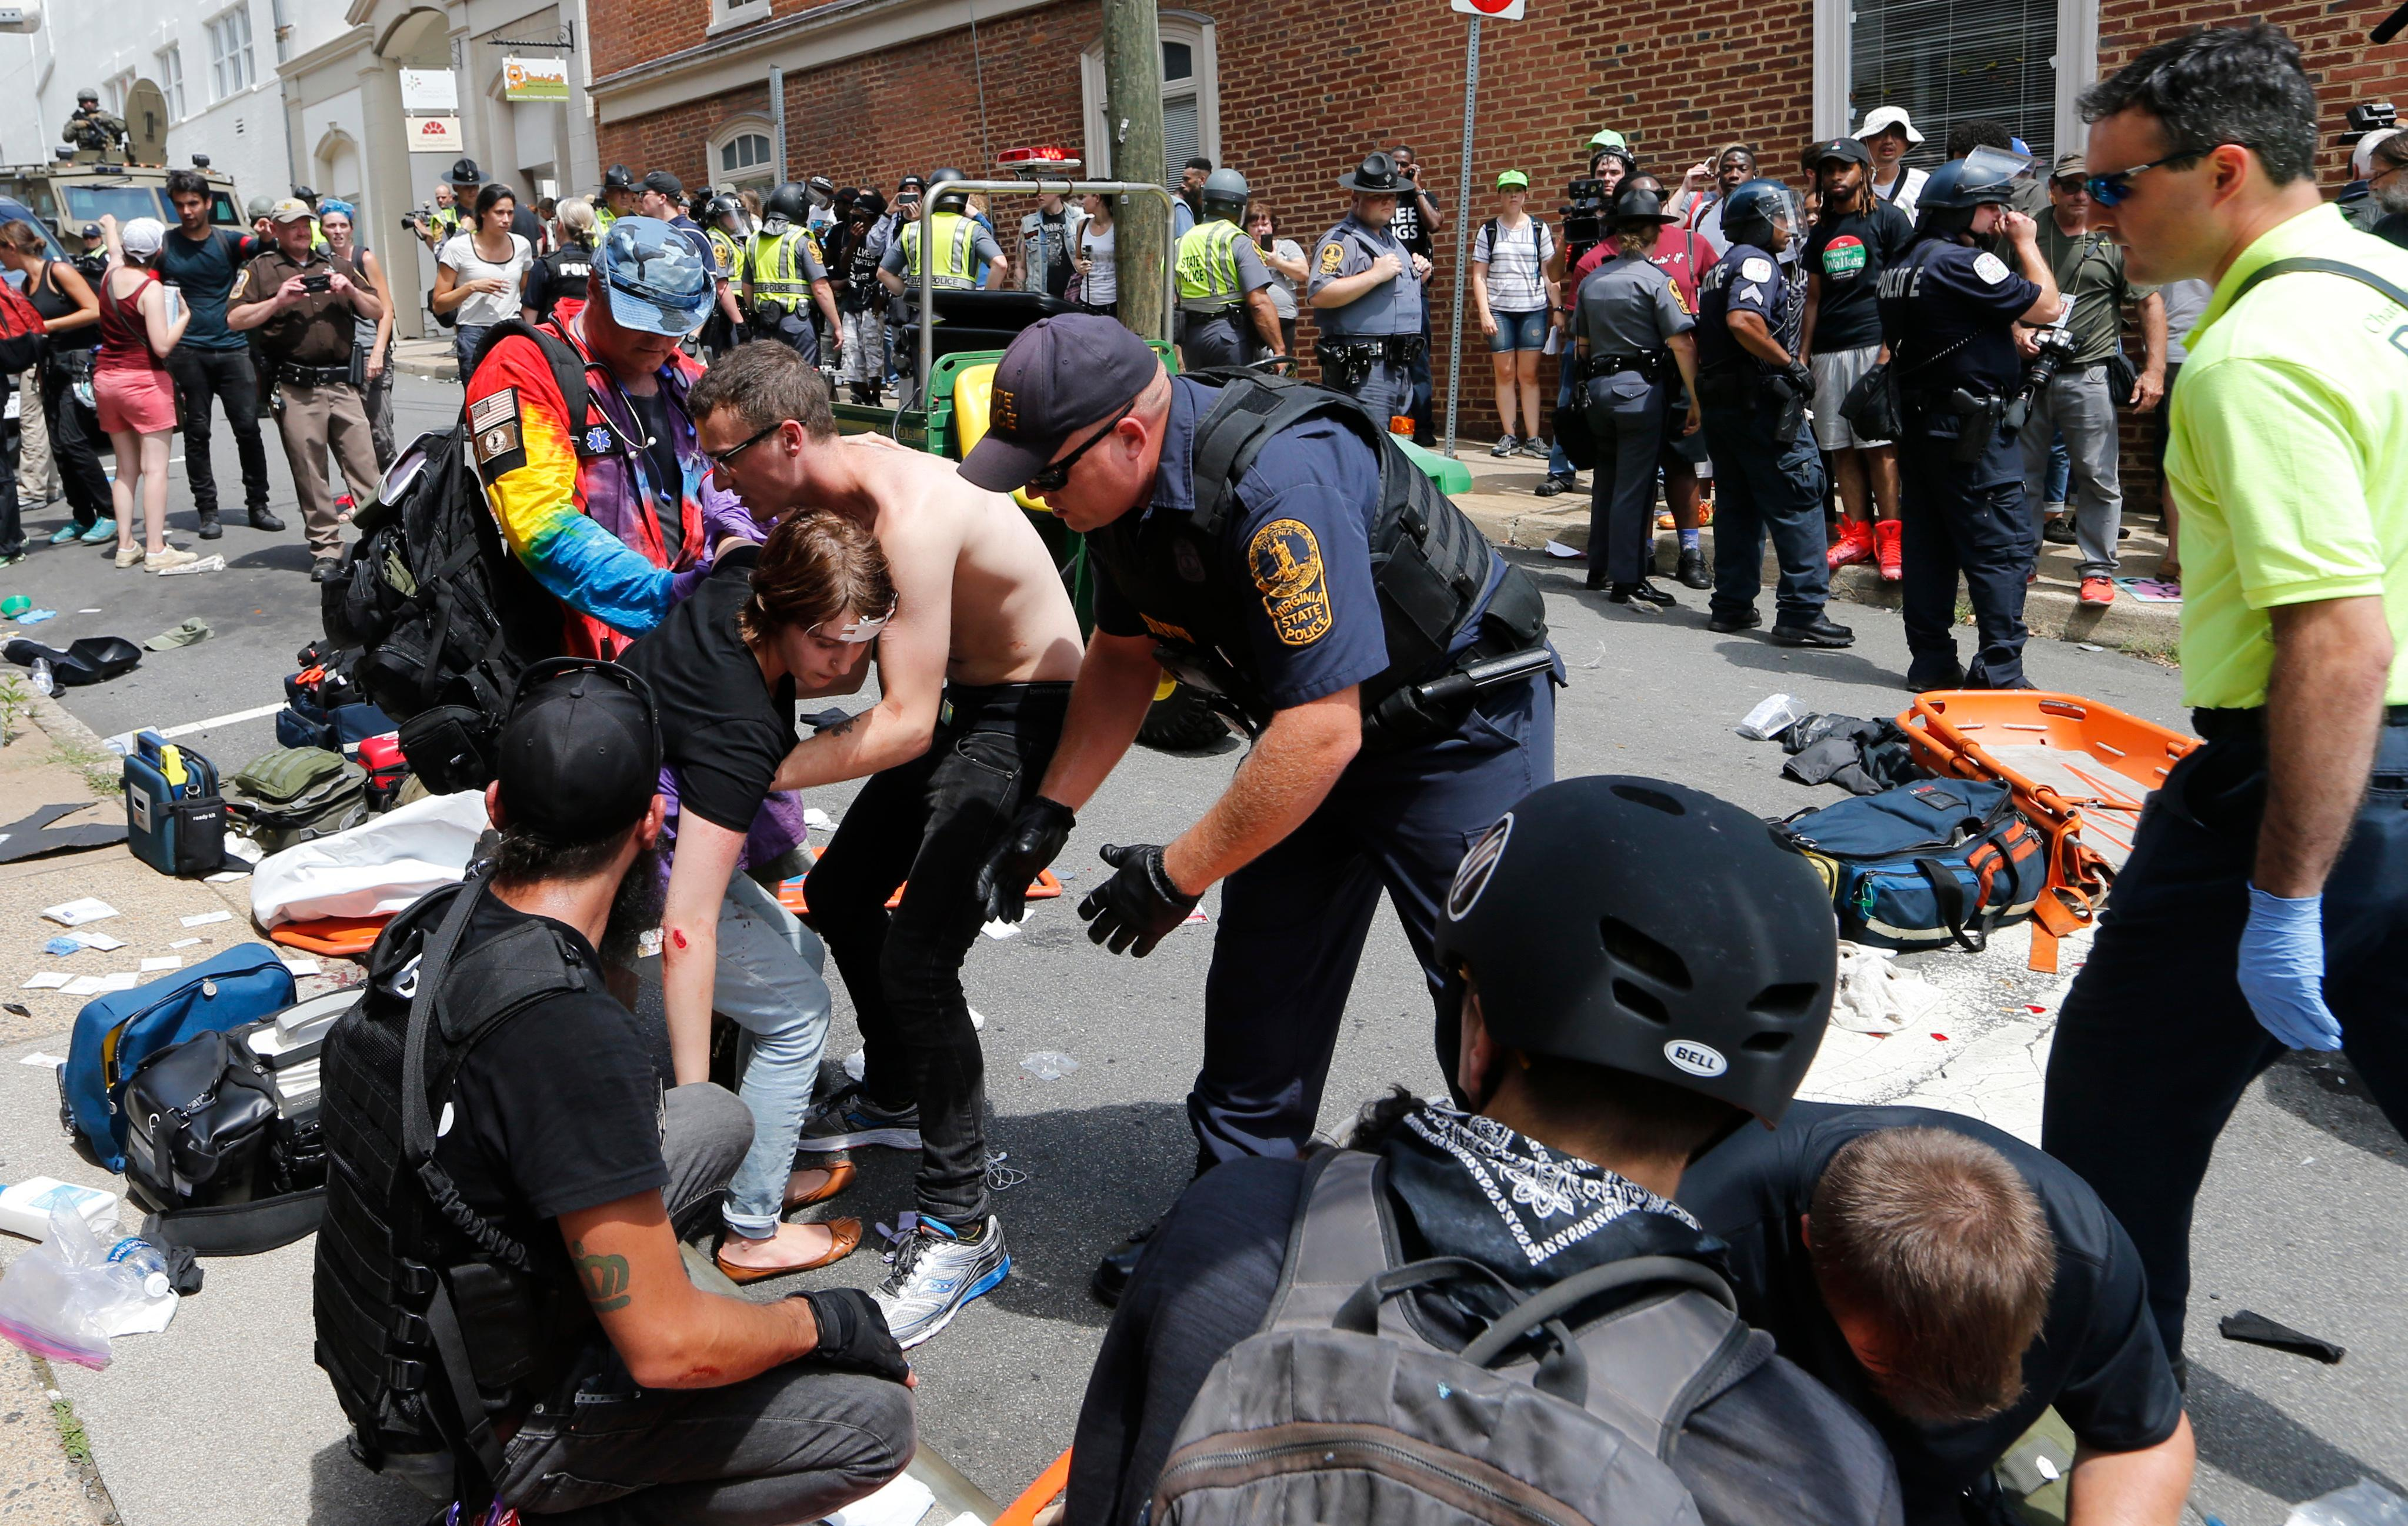 Rescue personnel help injured people after a car ran into a large group of protesters after a white nationalist rally in Charlottesville, Va., Saturday, Aug. 12, 2017. The nationalists were holding the rally to protest plans by the city of Charlottesville to remove a statue of Confederate Gen. Robert E. Lee. There were several hundred protesters marching in a long line when the car drove into a group of them. (AP Photo/Steve Helber)